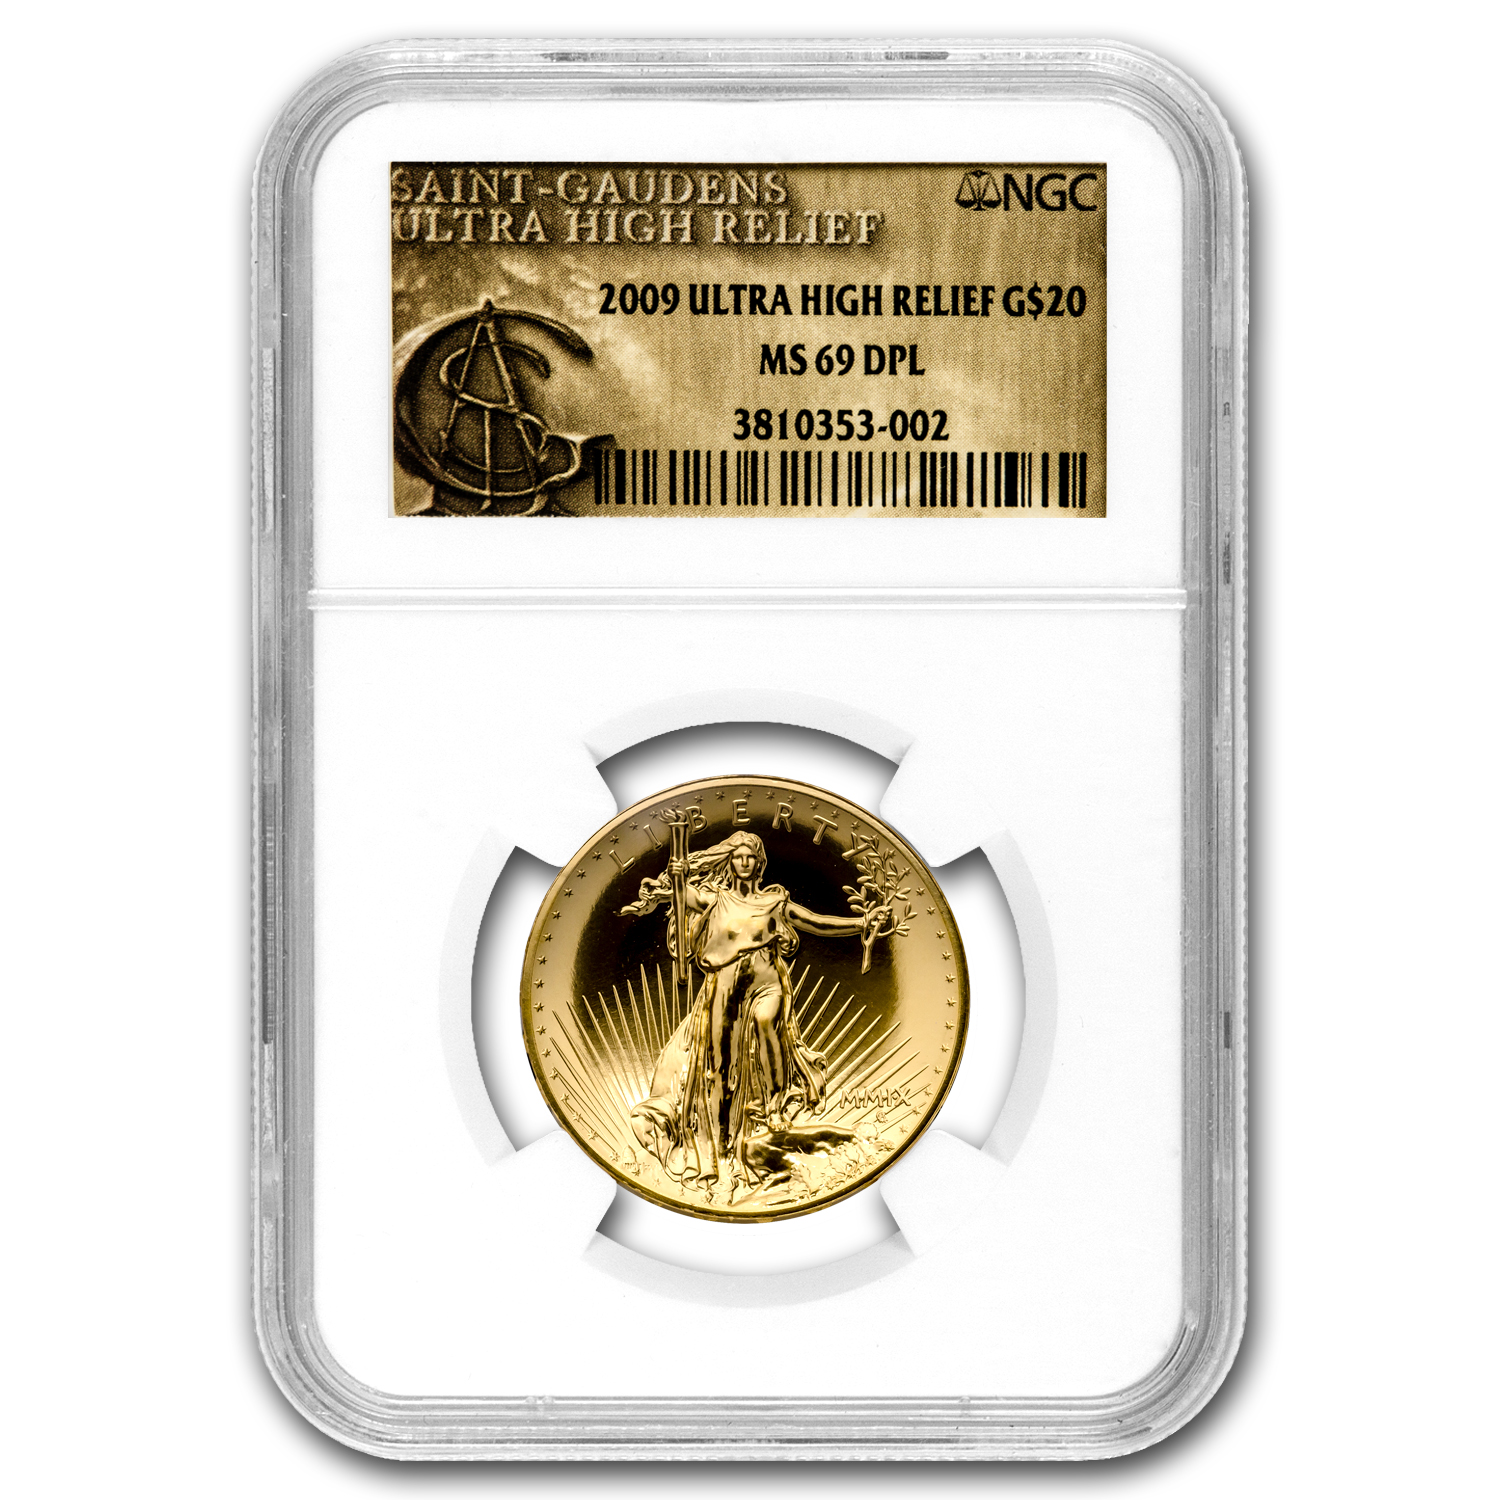 2009 Ultra High Relief Double Eagle MS-69 DPL NGC (Gold Label)